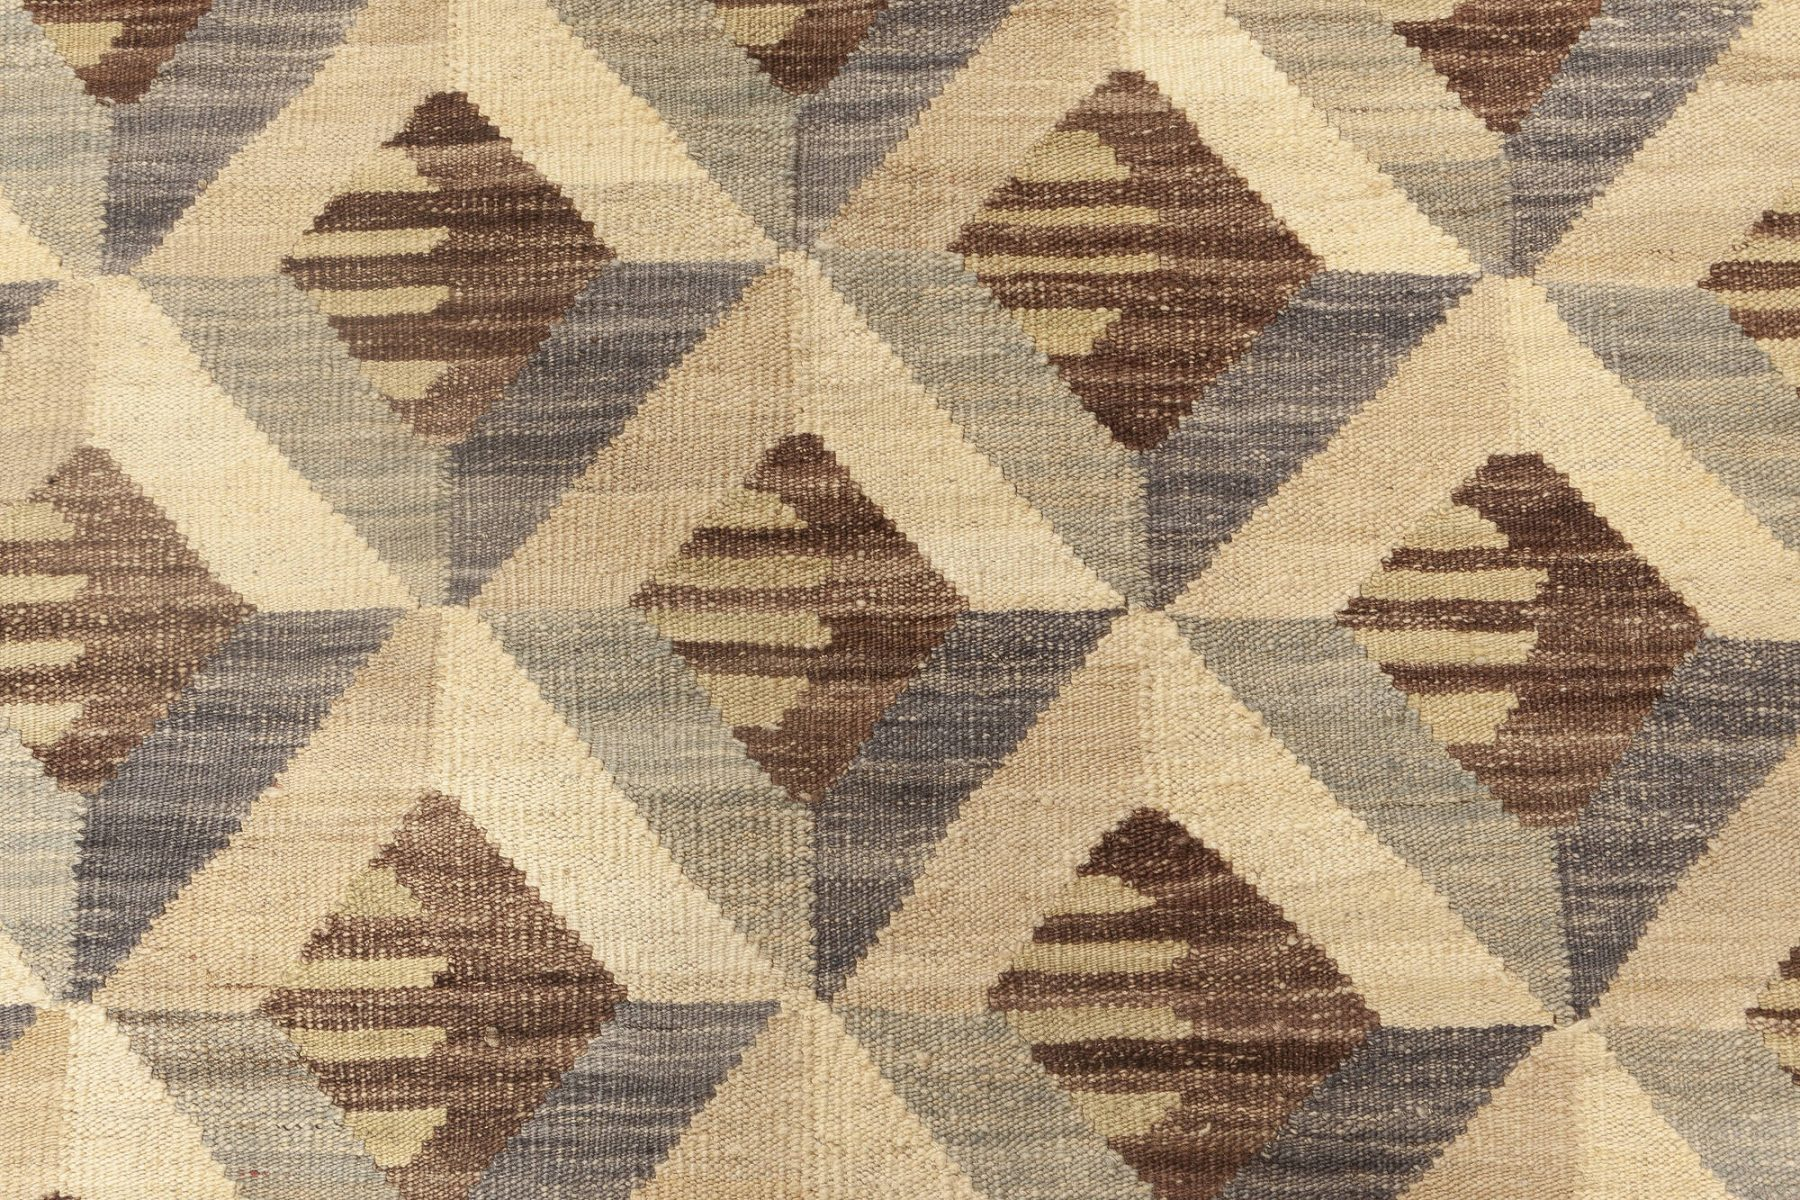 Contemporary Geometric Beige, Brown and Gray Handwoven Wool Rug N11928